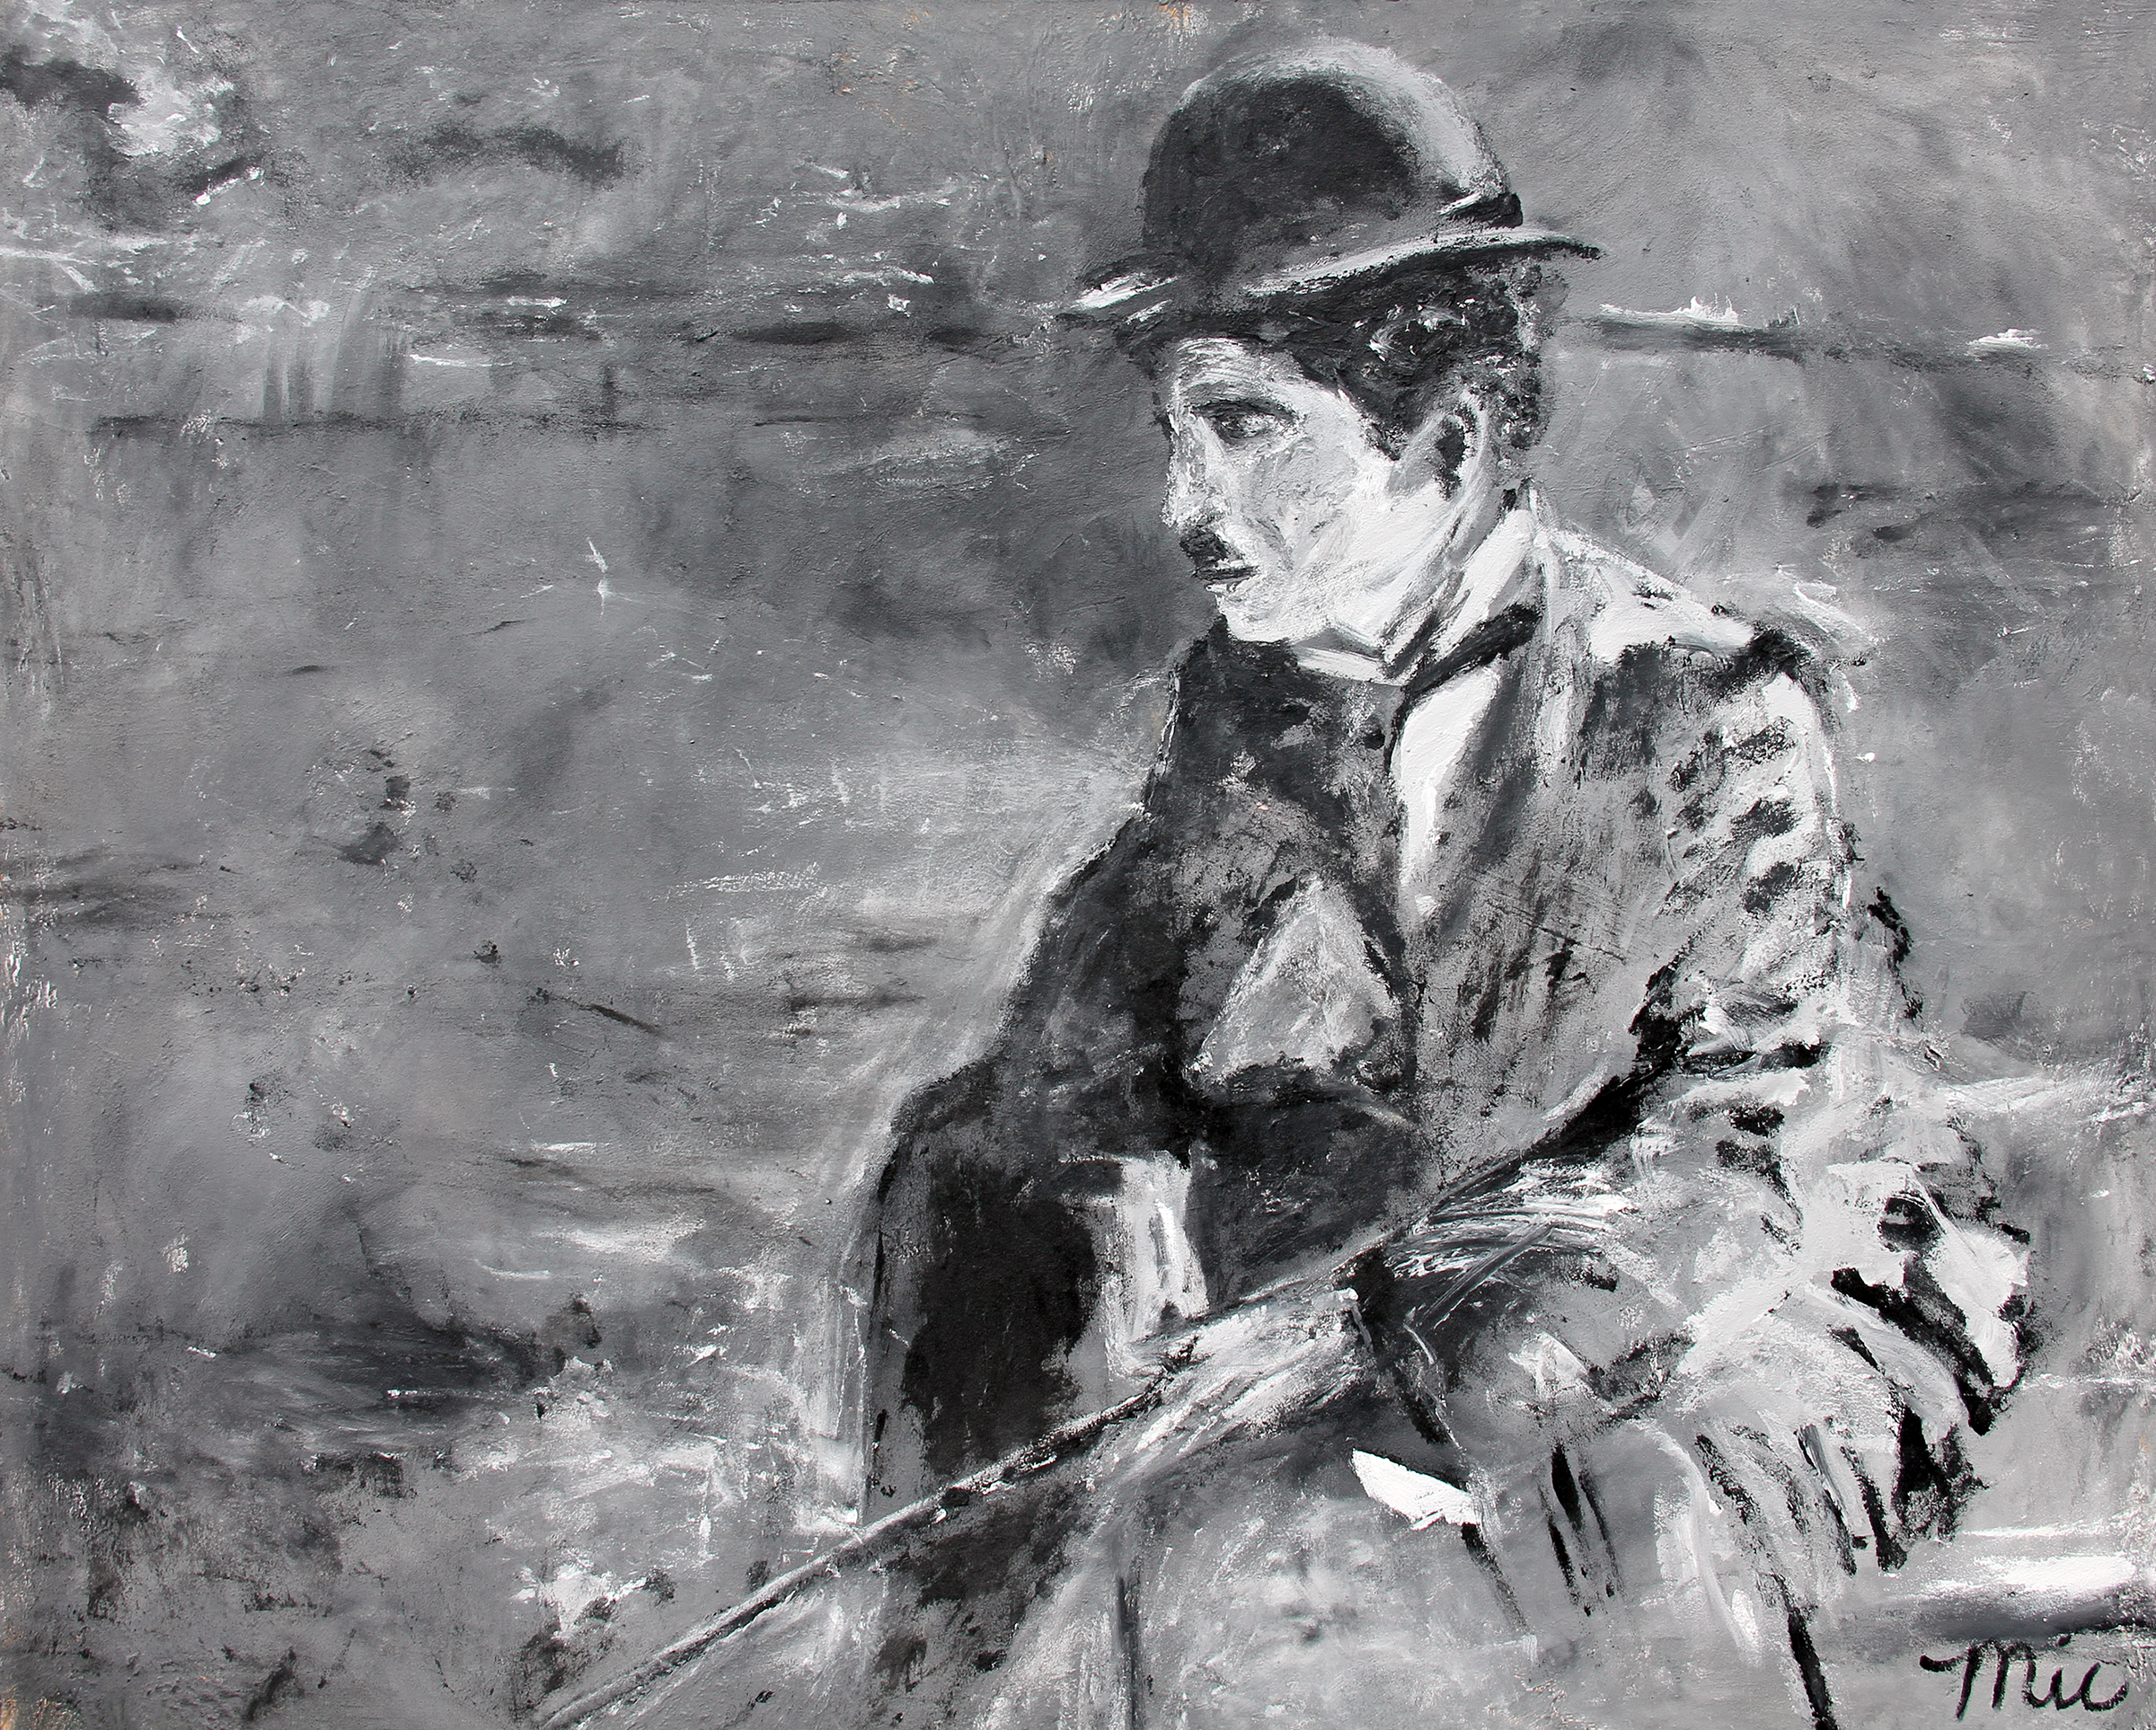 """All Alone"" Charlie Chaplin - Private Collection of Ulrika Hart.Giclee Limited Edition and canvas prints are available. Please visit the prints gallery."